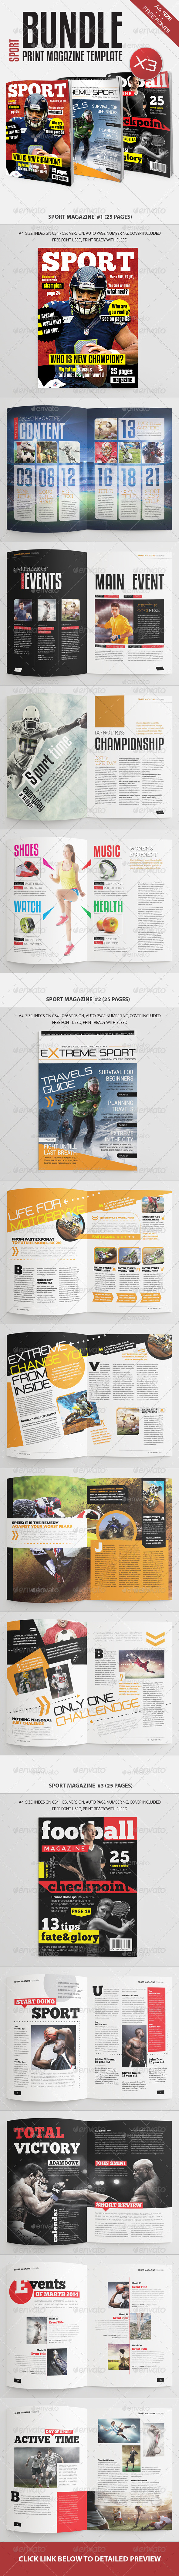 Sport Magazine Bundle Vol3 - Magazines Print Templates